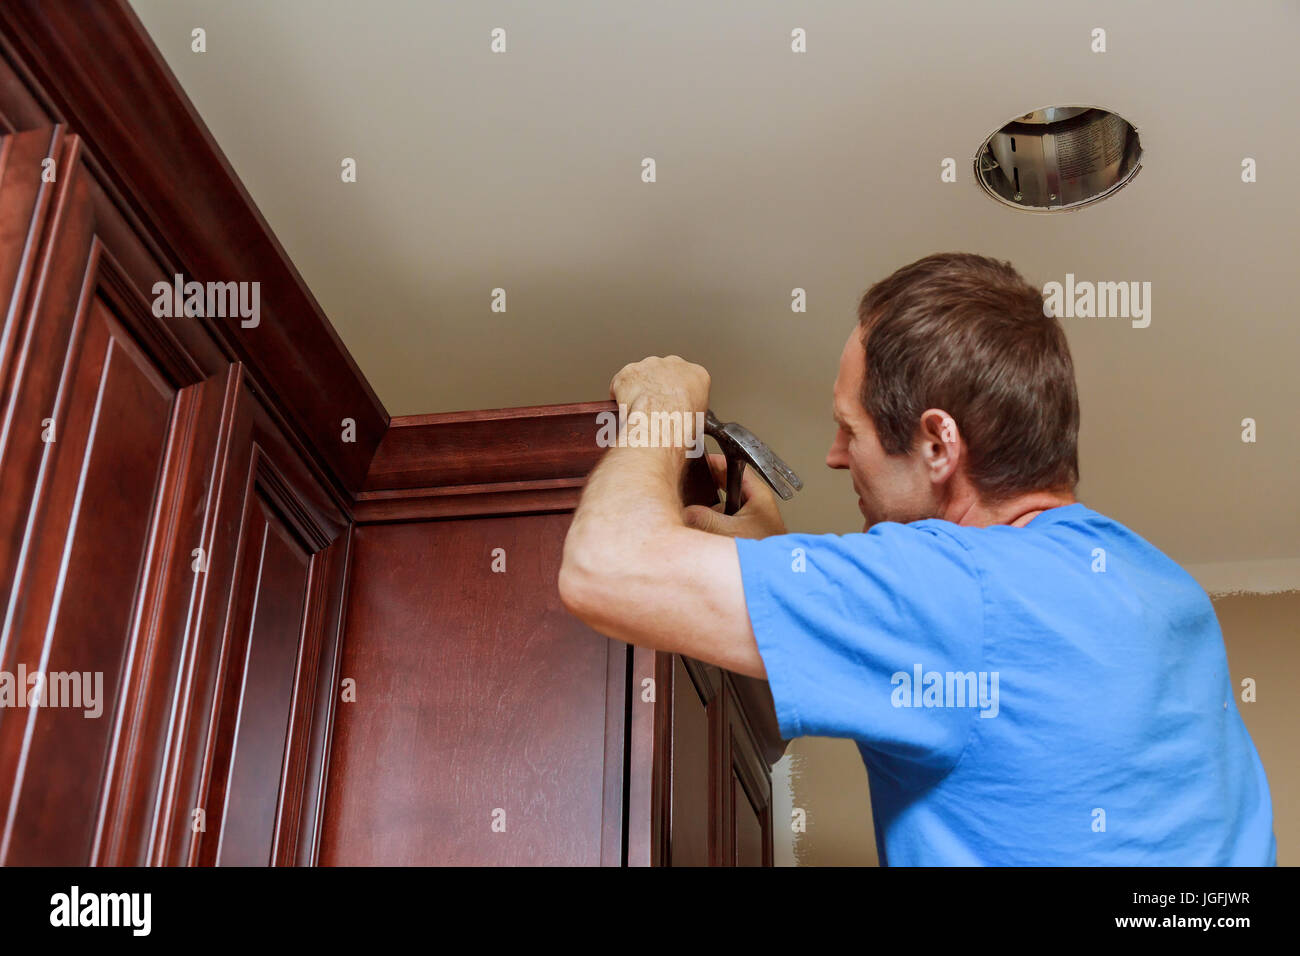 Carpenter Brad Using Nail Gun To Crown Moulding On Kitchen Cabinets Framing  Trim, With The